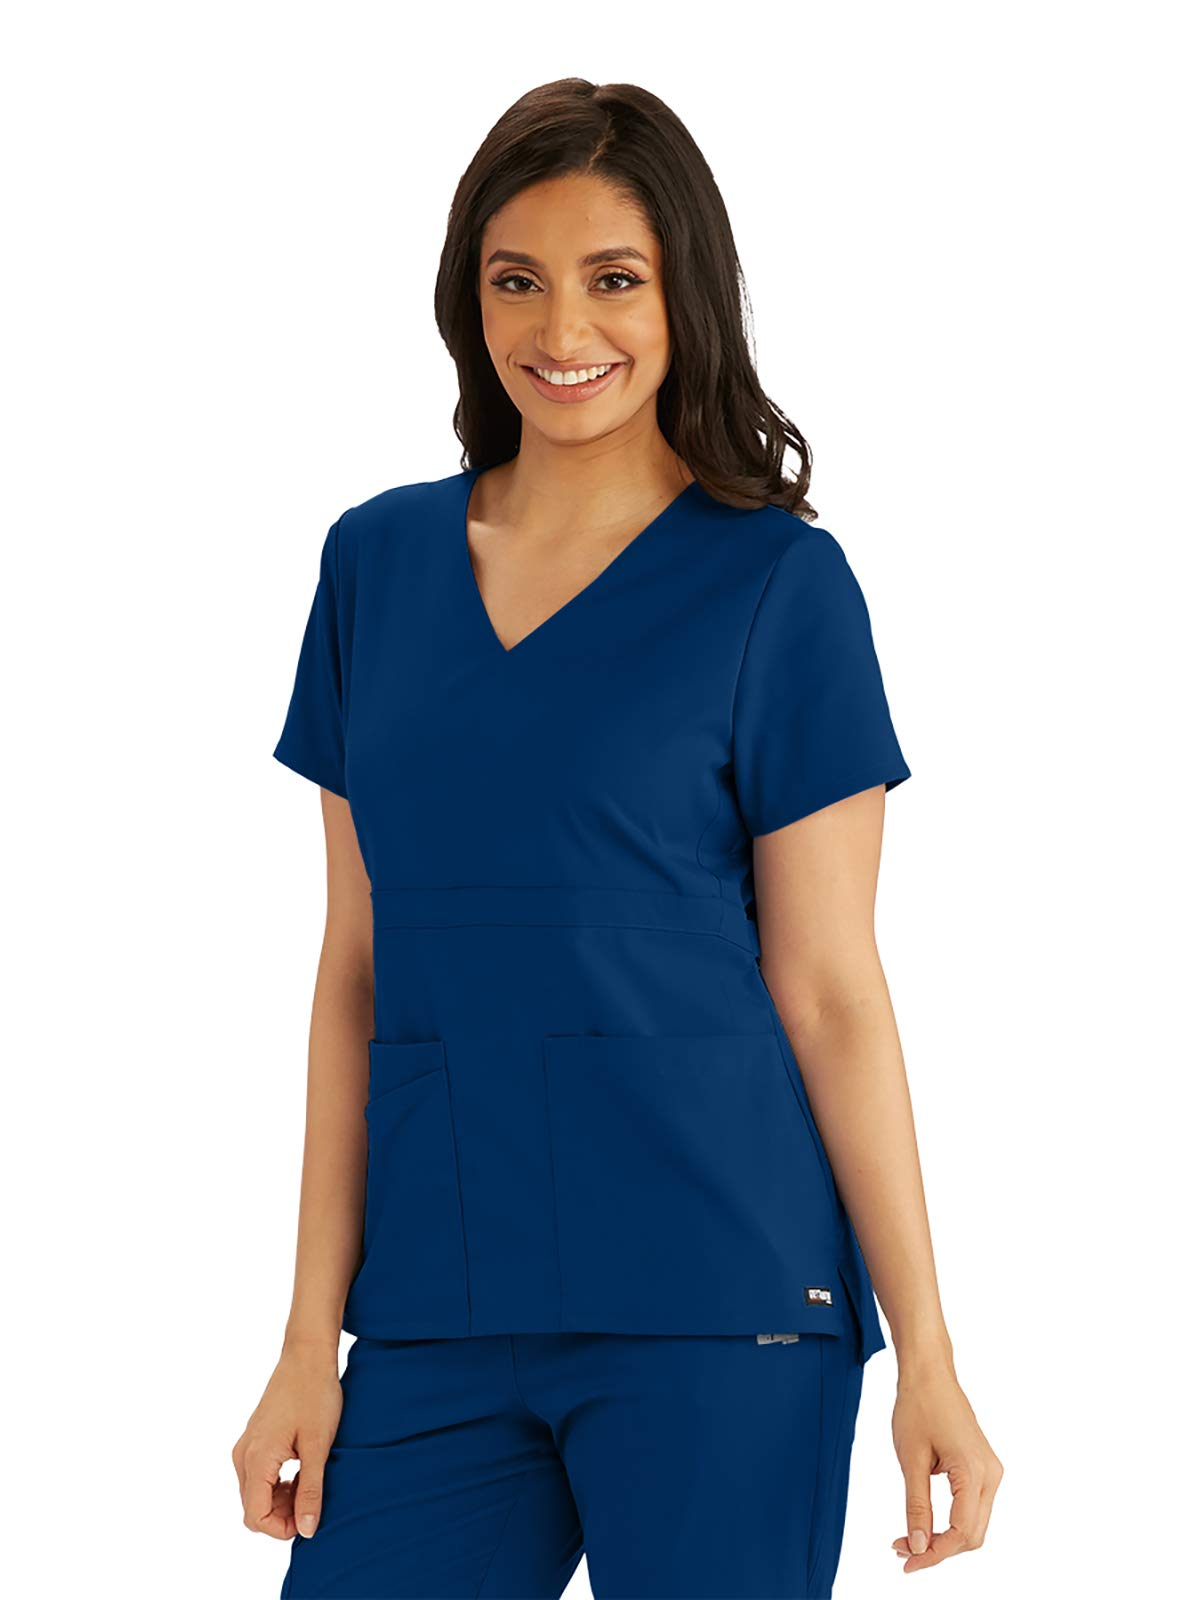 Grey's Anatomy Spandex-Stretch Top for Women– Extreme Comfort Medical Scrub Top